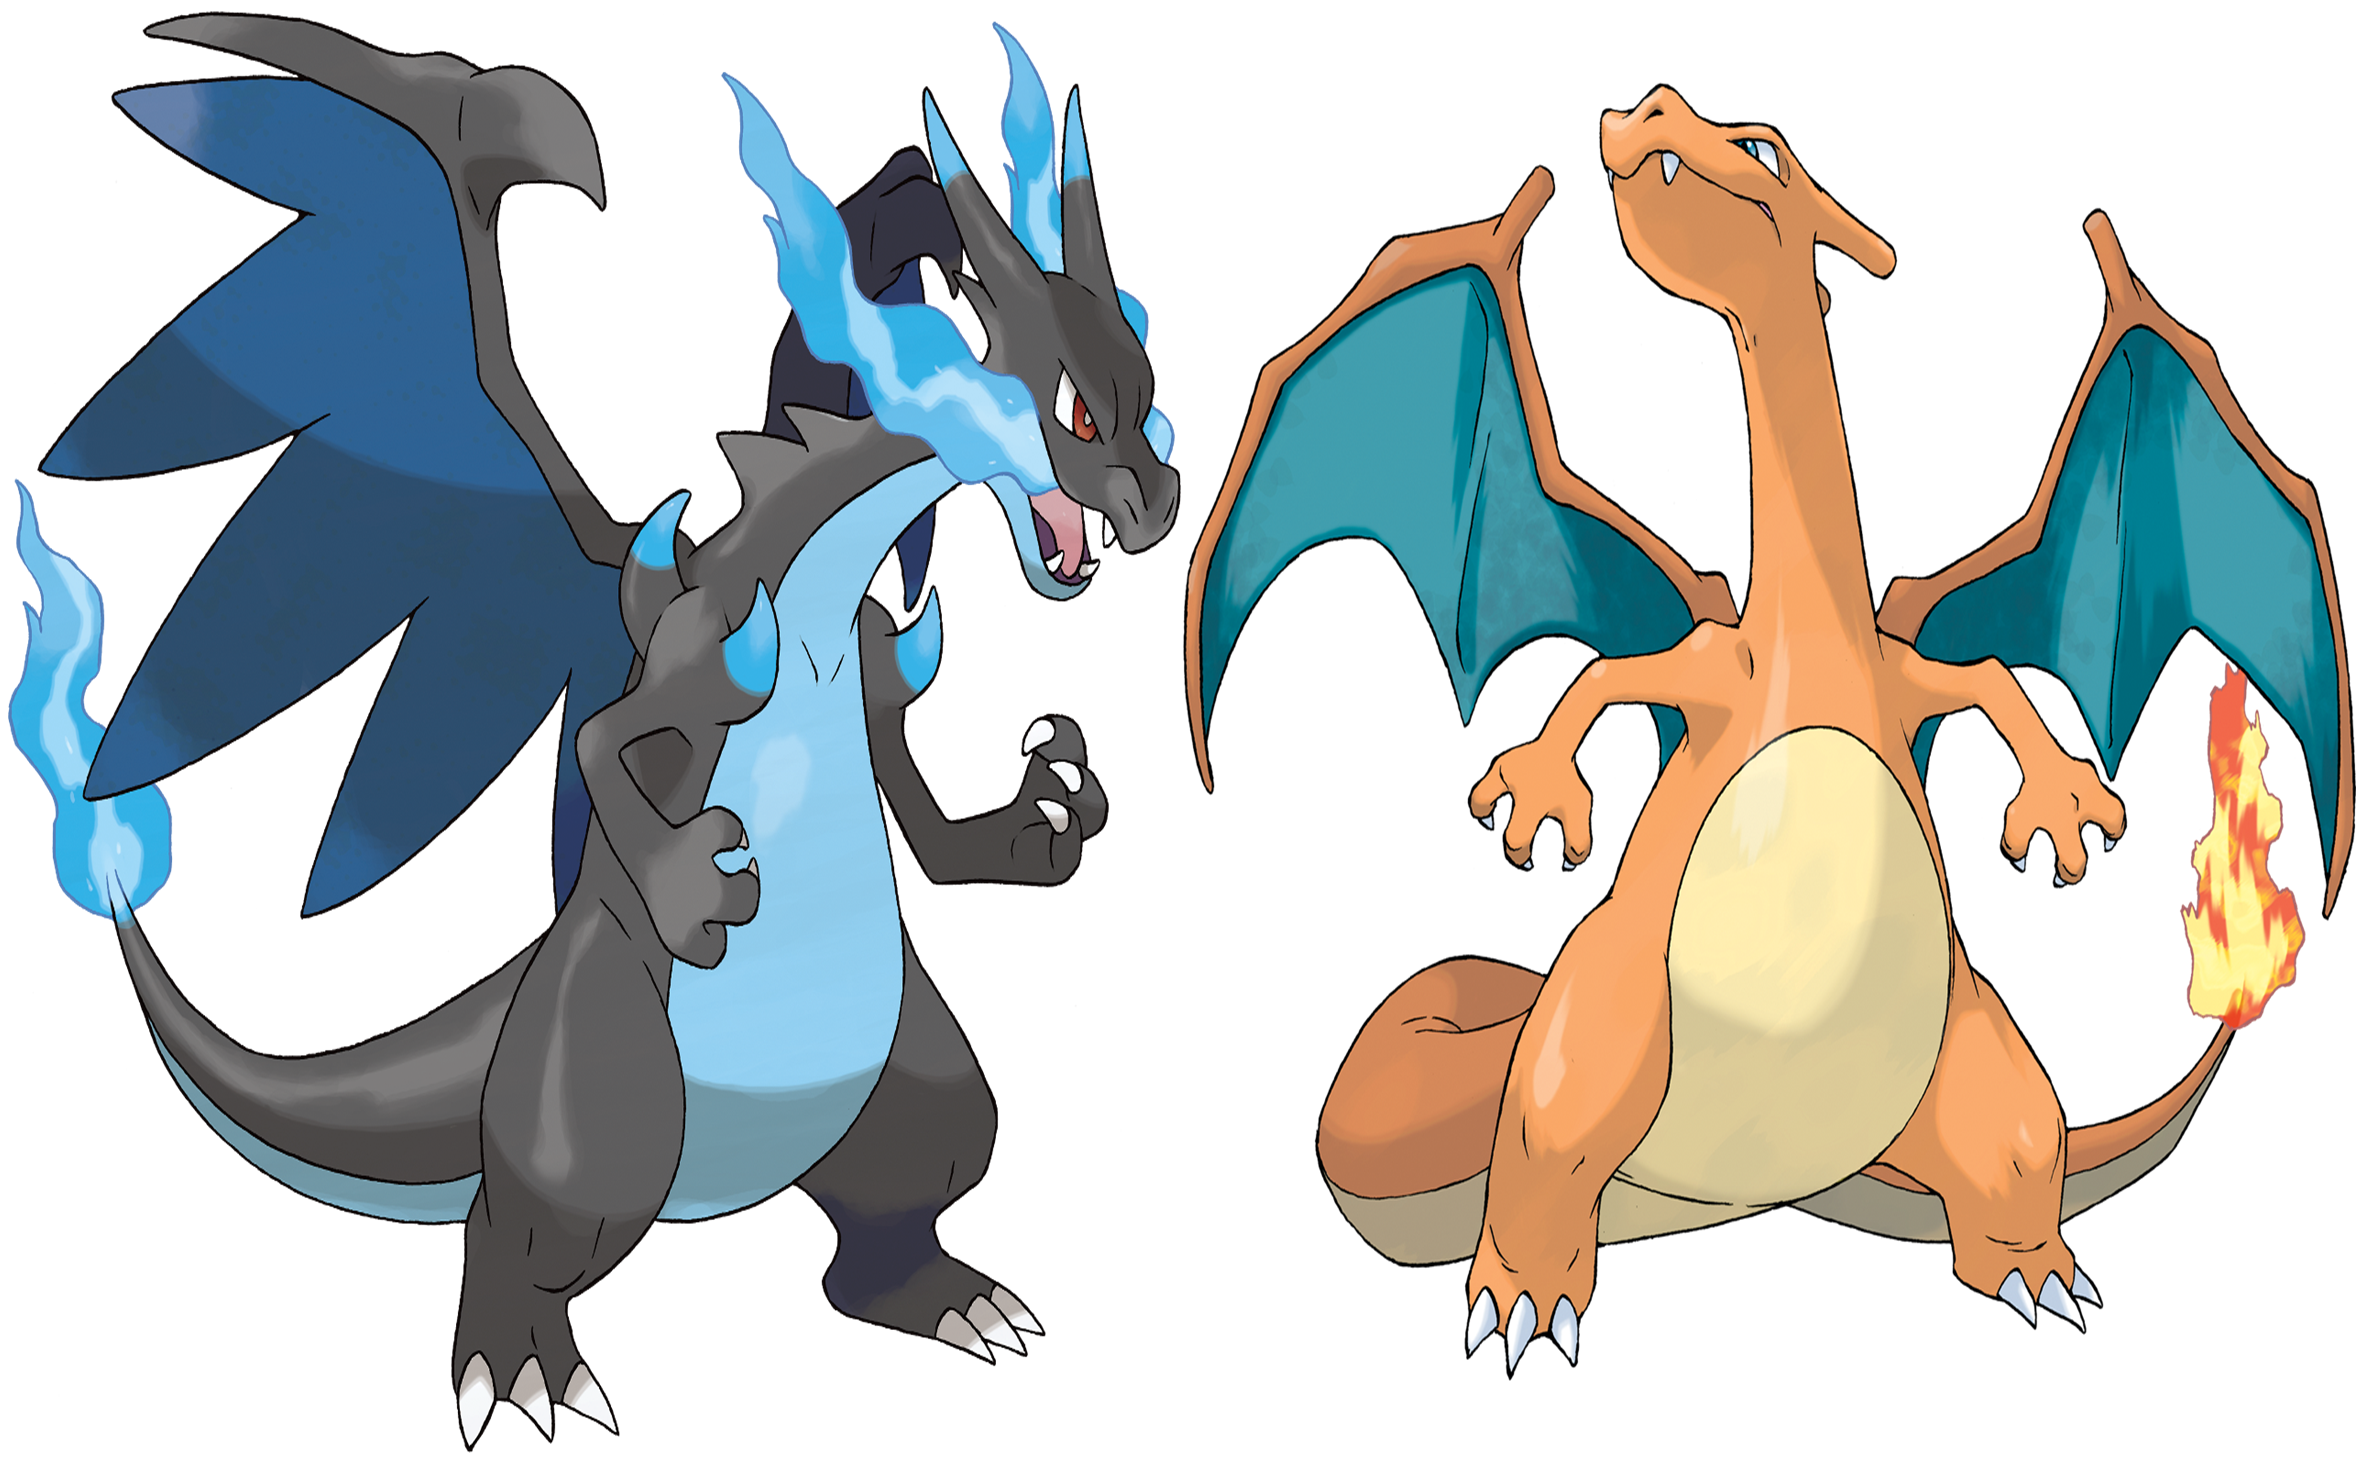 Charizard And Mega Charizard X by Frie-Ice on DeviantArt